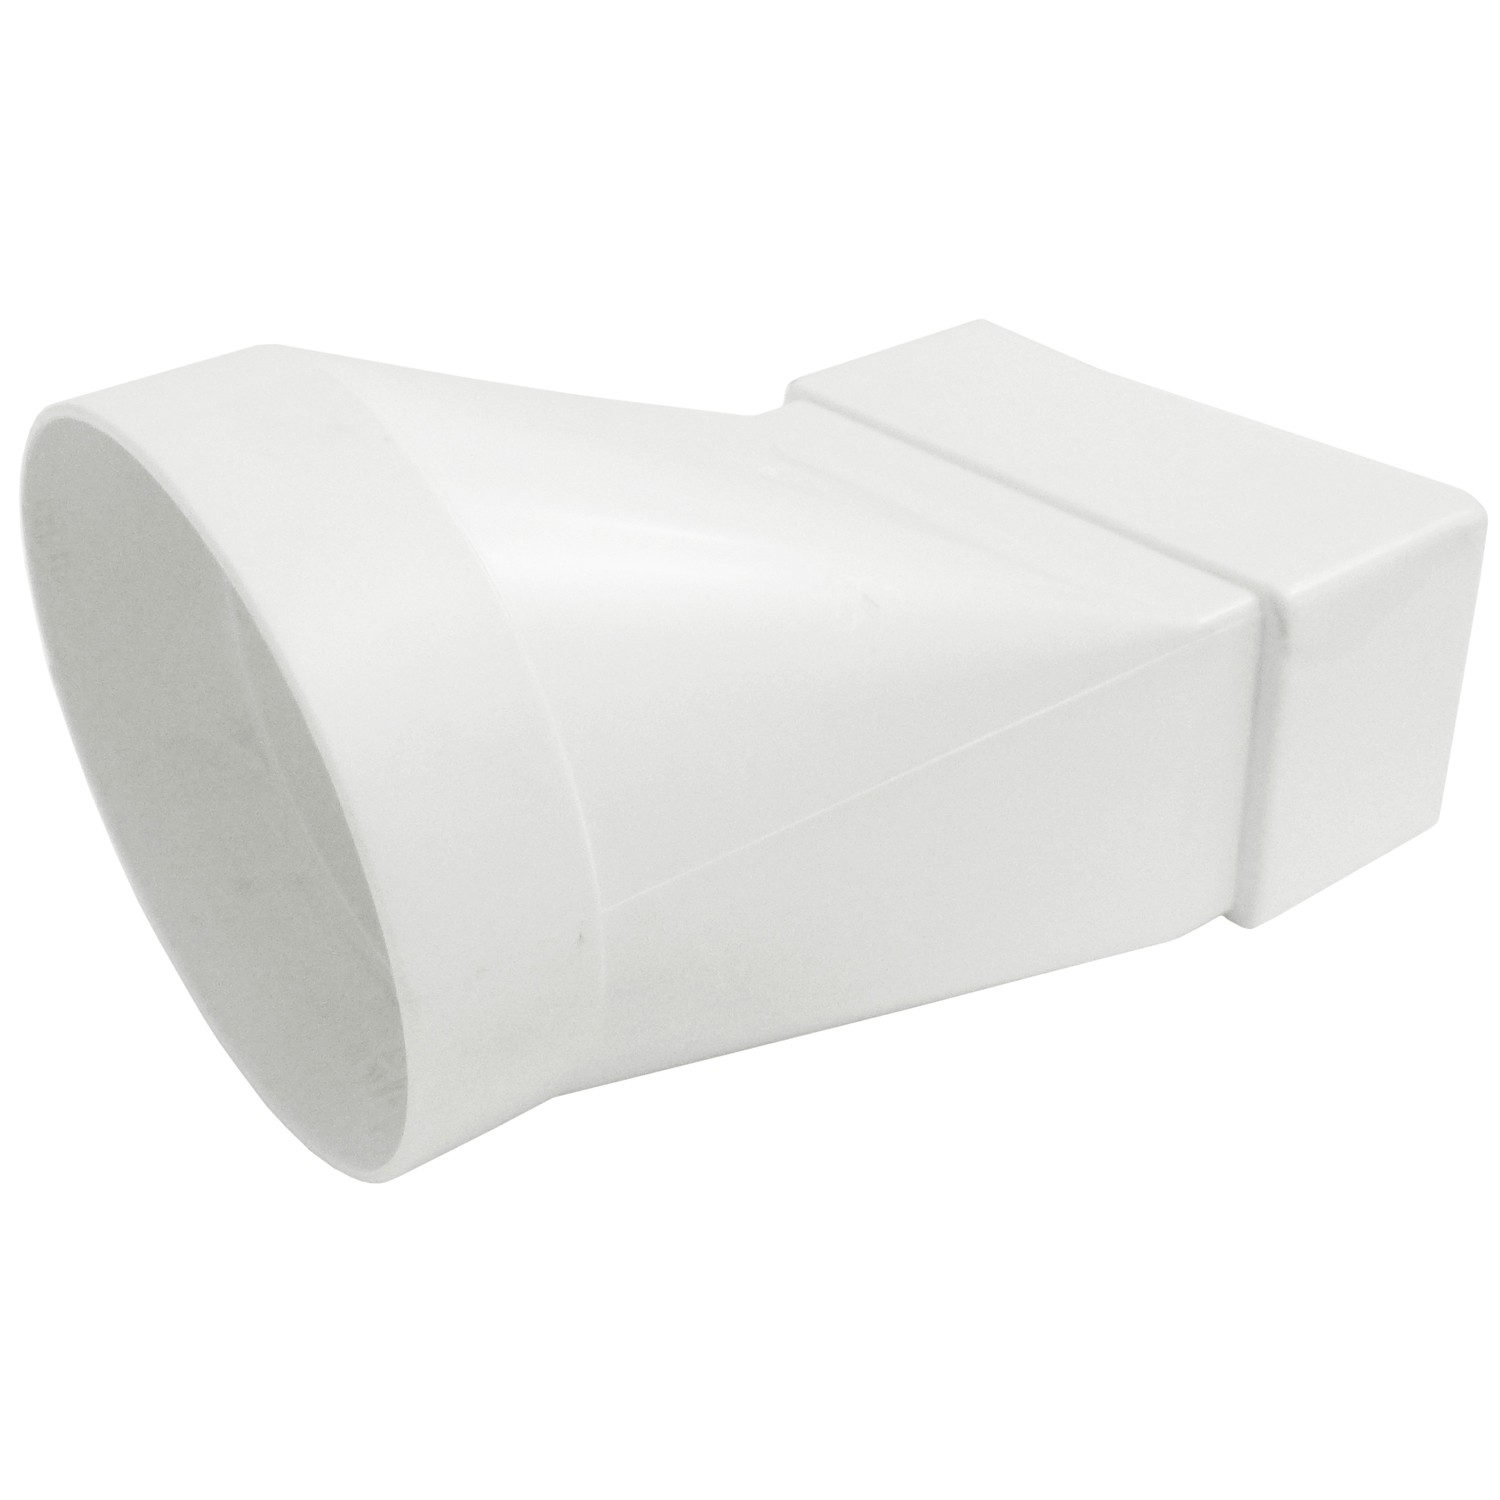 Manrose Round To Flat Ducting Pipe Long Adaptor - White, 125mm to 204mm x 60mm